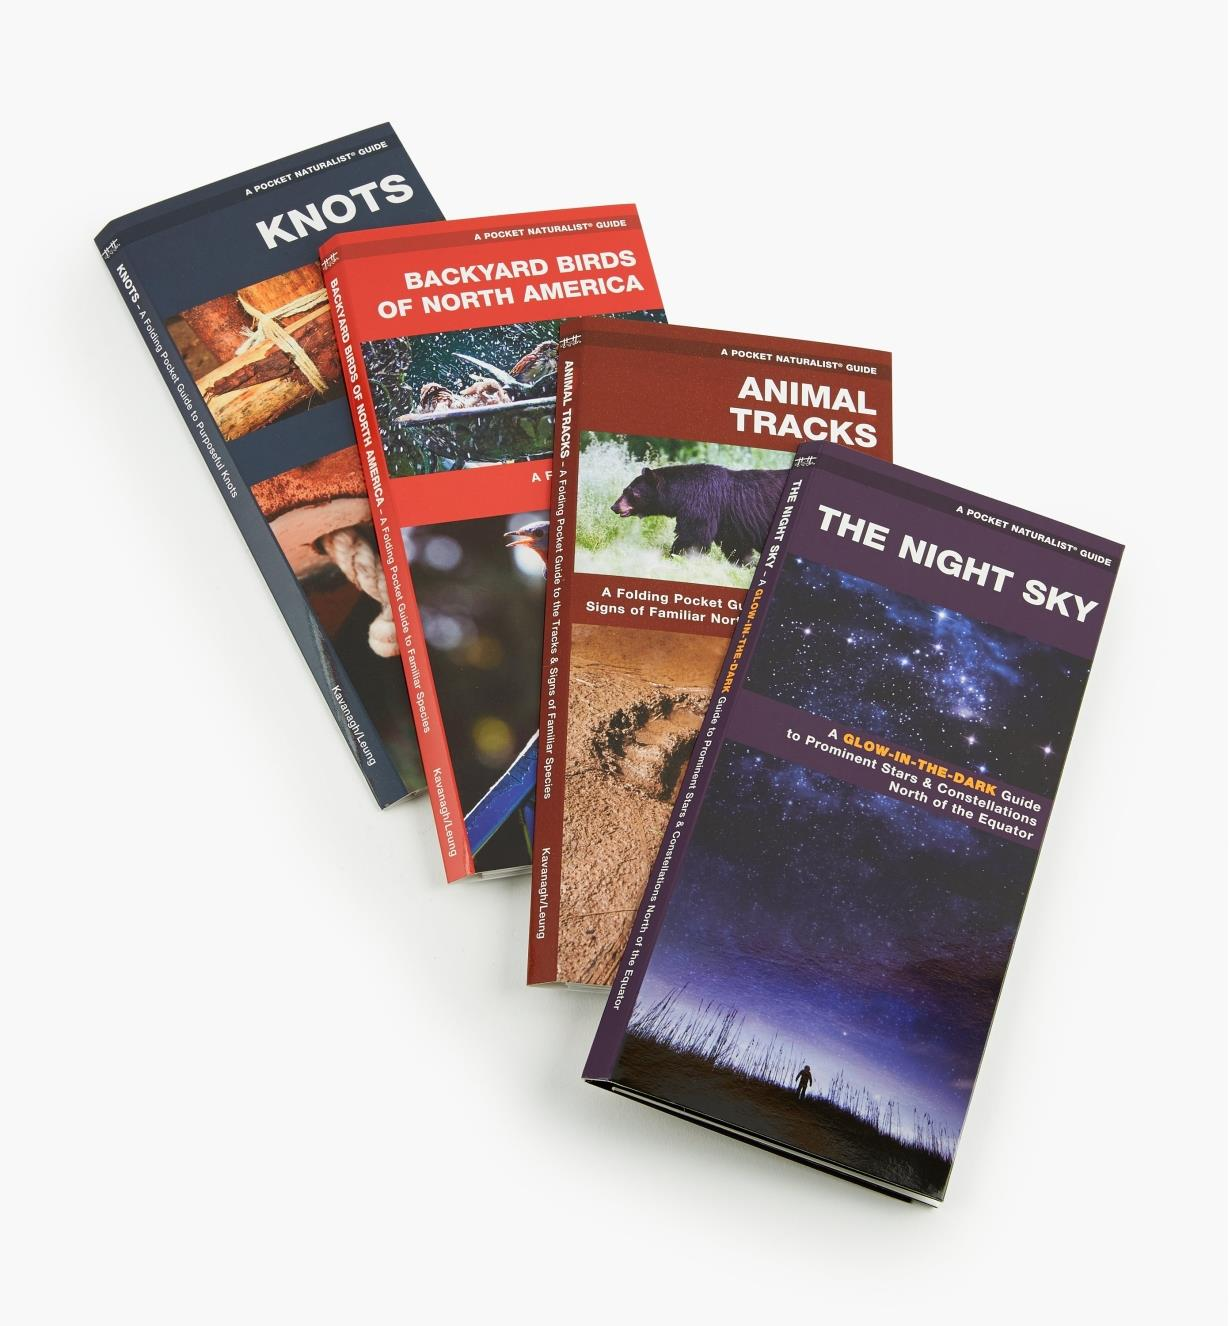 LA267 - Set of Four Pocket Guides(Night Sky, Animal Tracks, Backyard Birds, Knots)